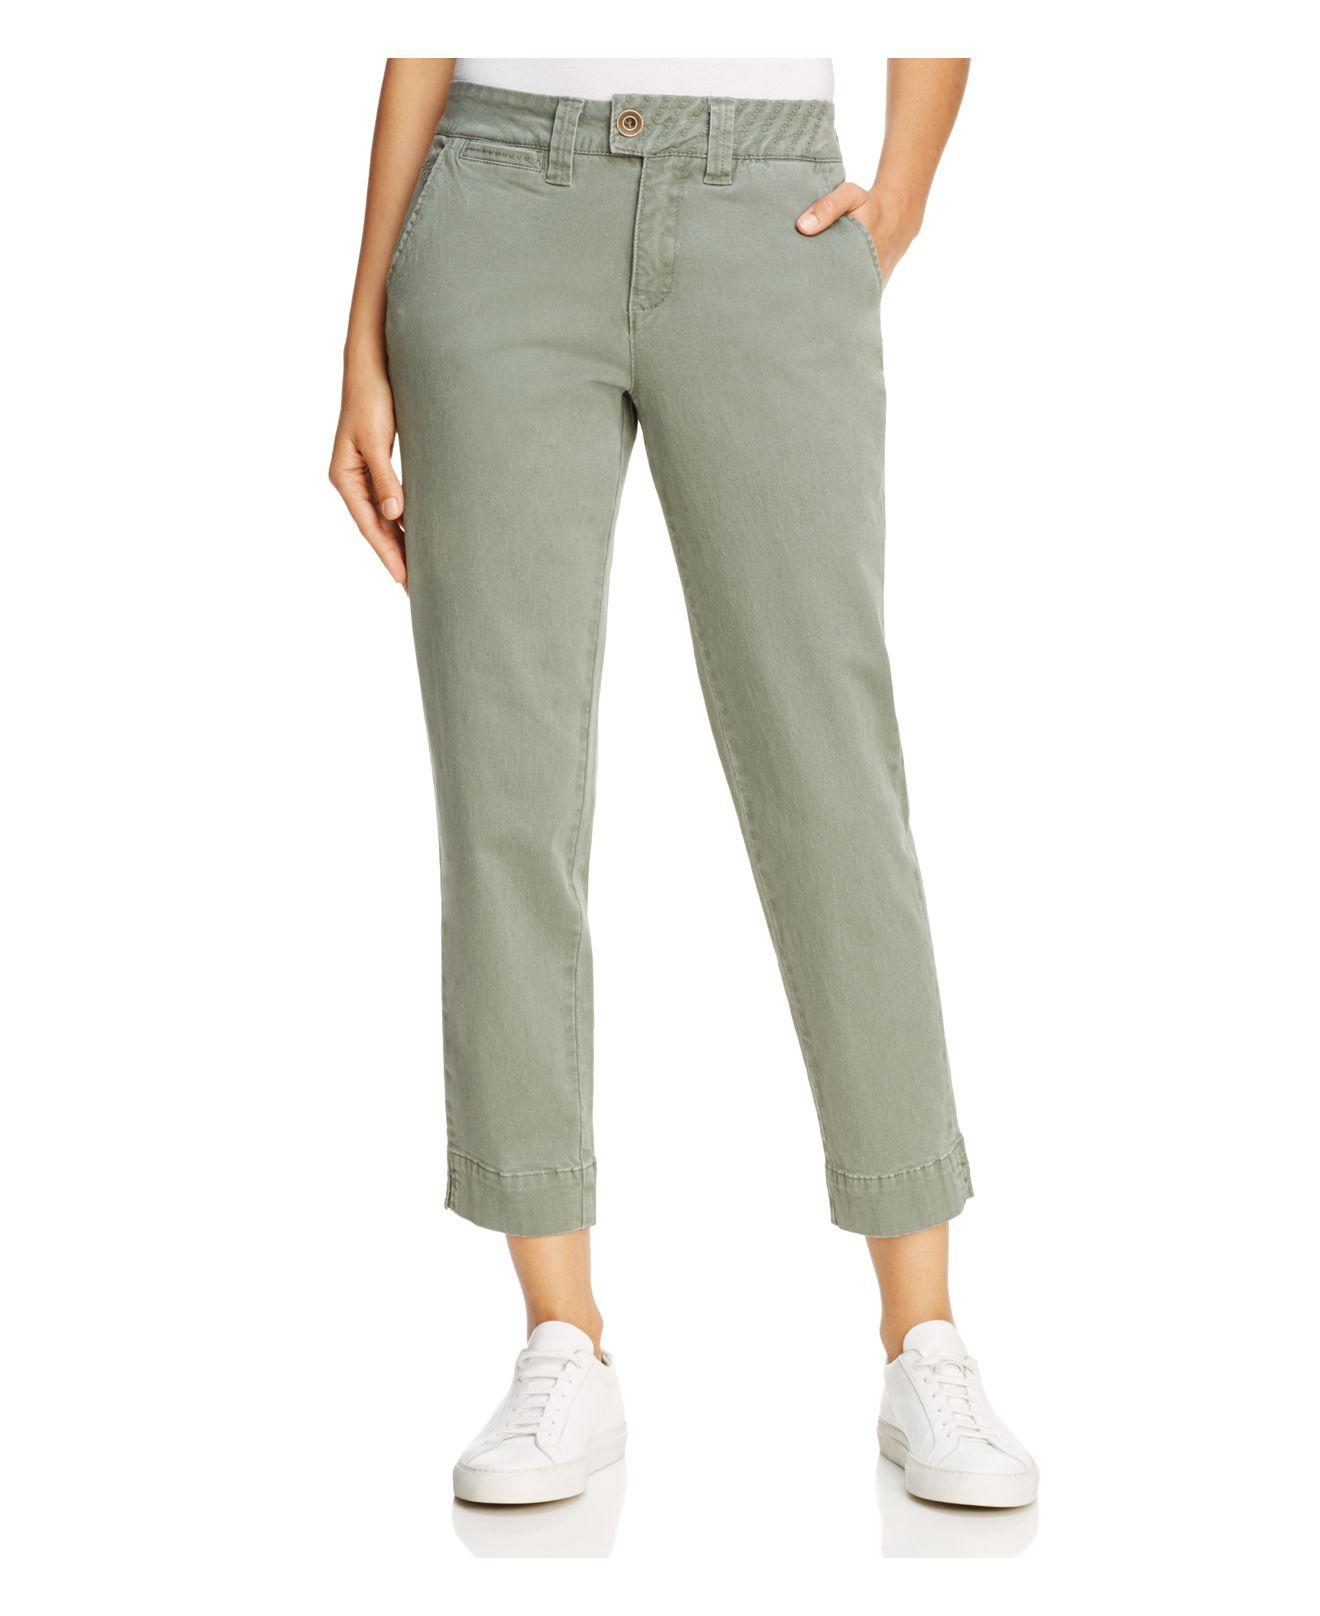 Shop great deals on quality women's clothing at Bass Pro Shops. Discover women's casual clothing from brands including Natural Reflections, Columbia & more.